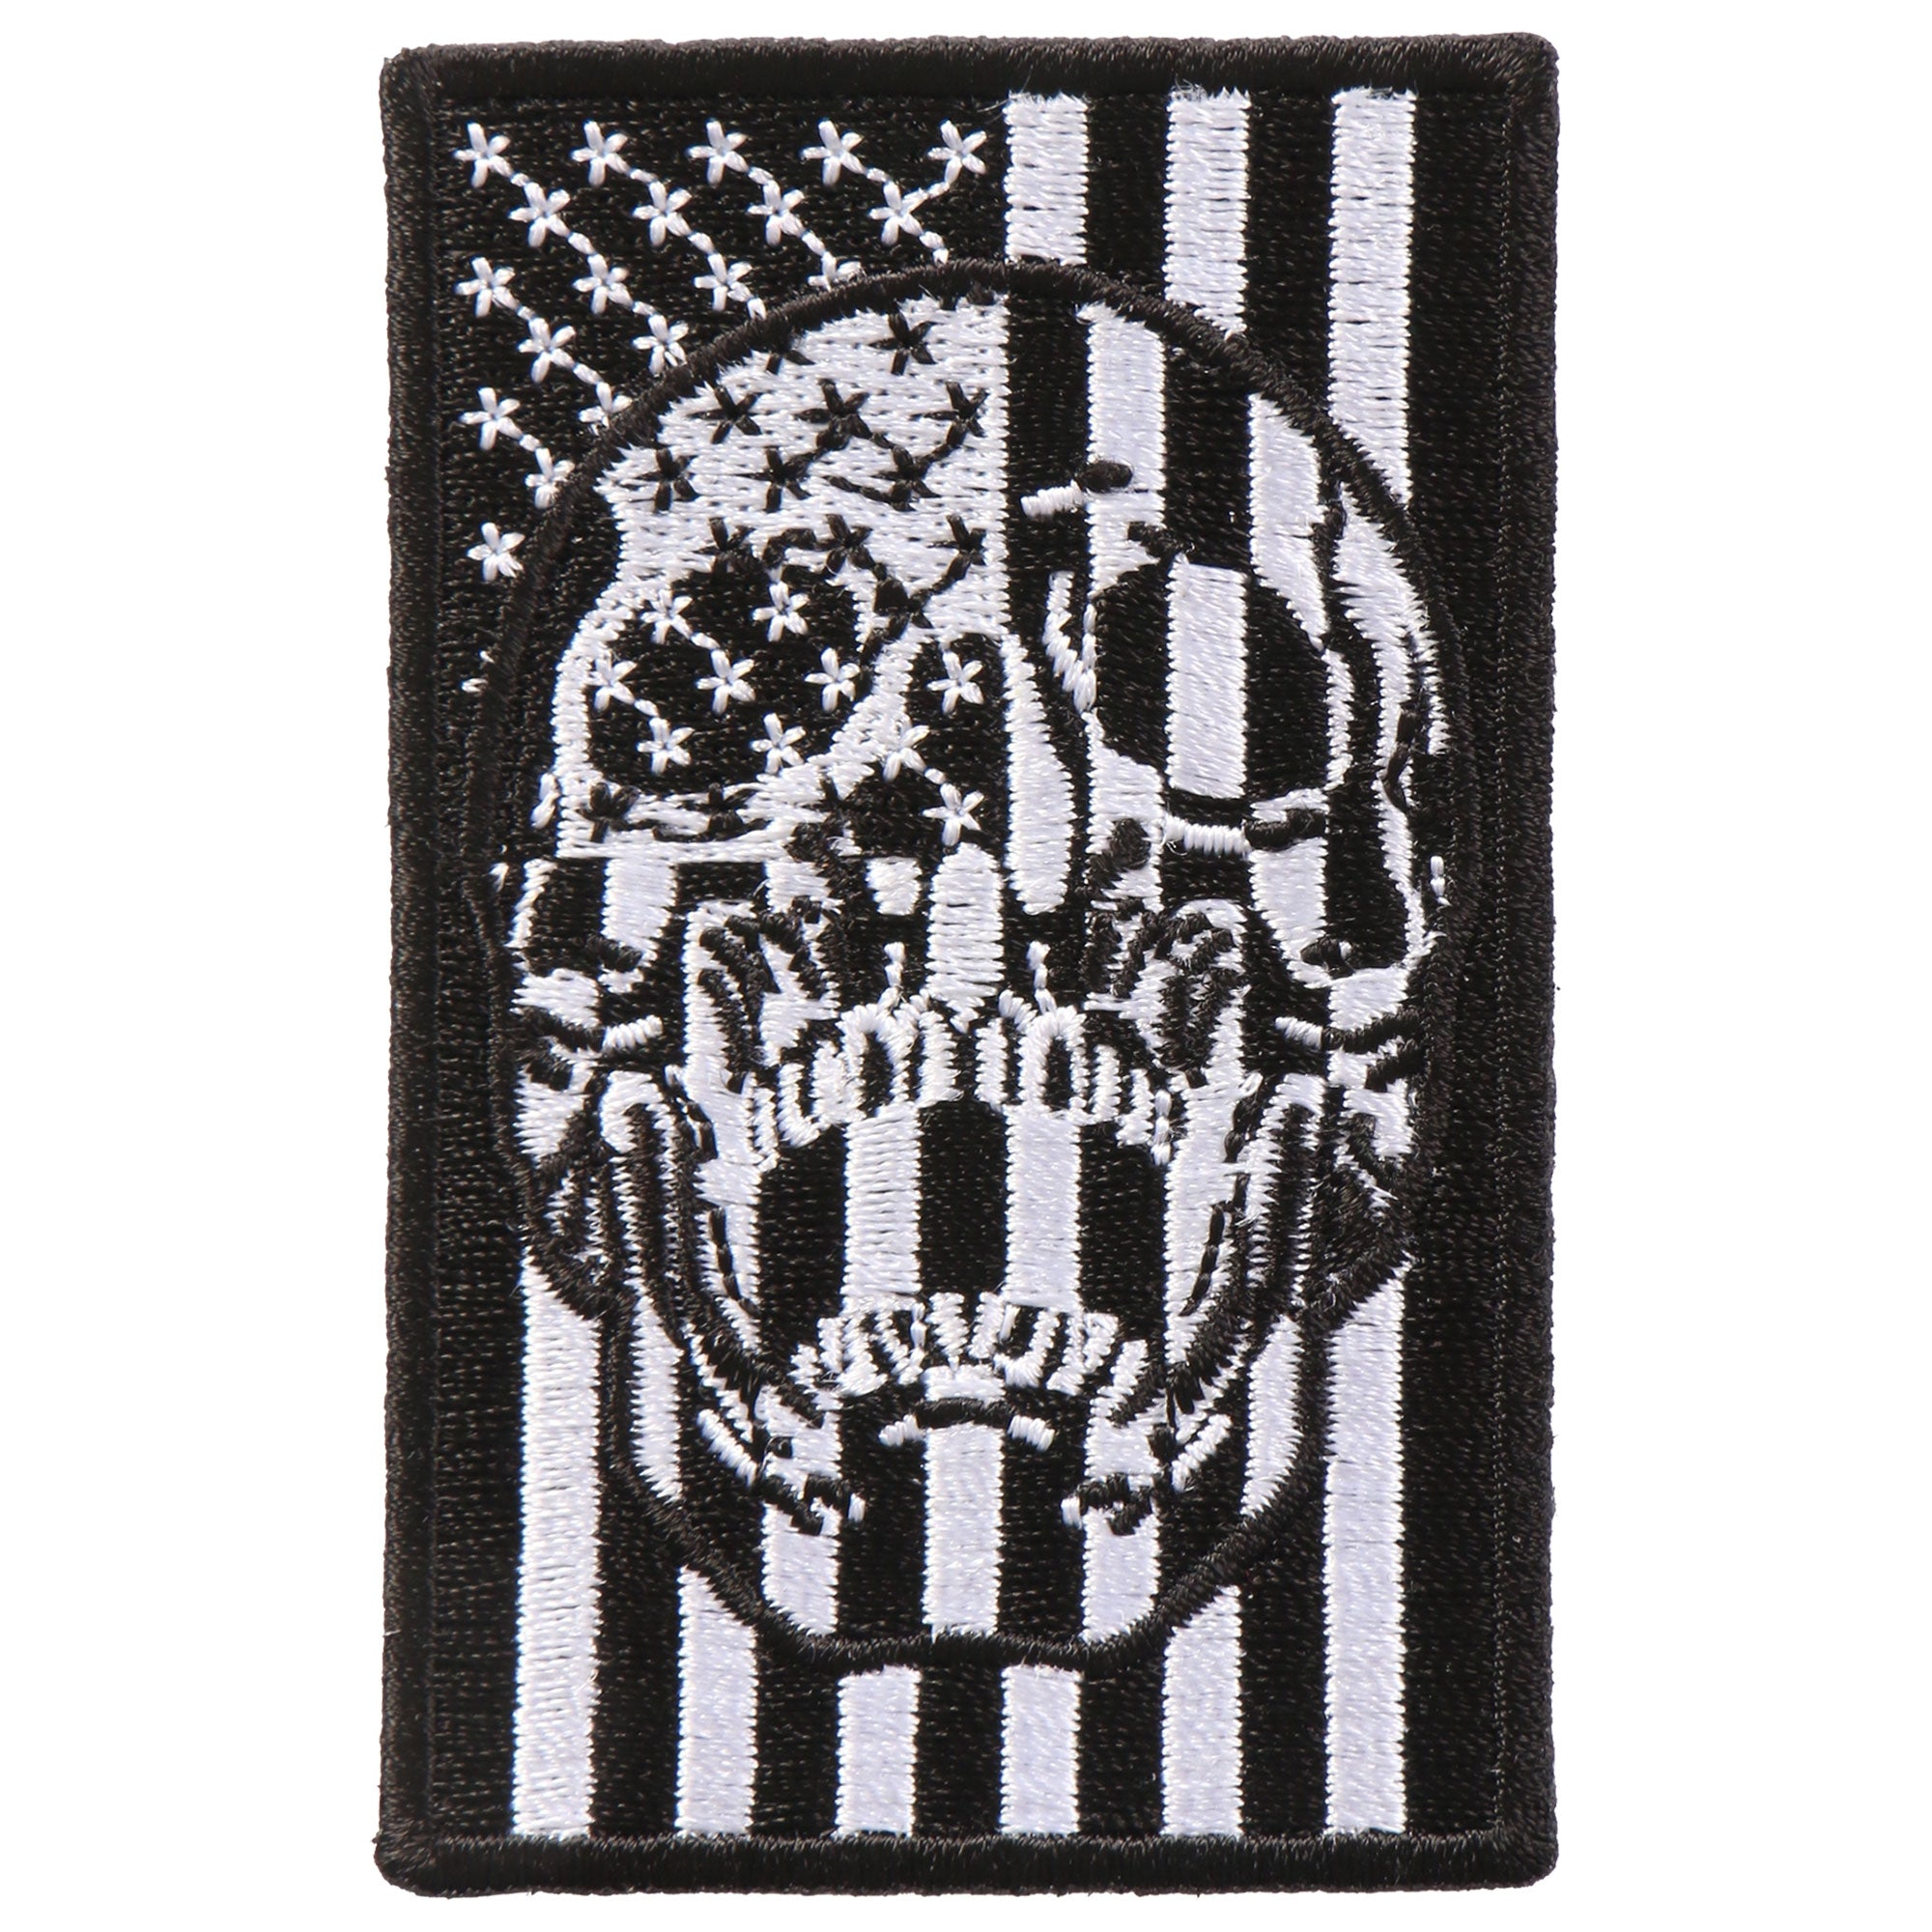 "Hot Leathers American Flag Skull 2""x3"" Patch"